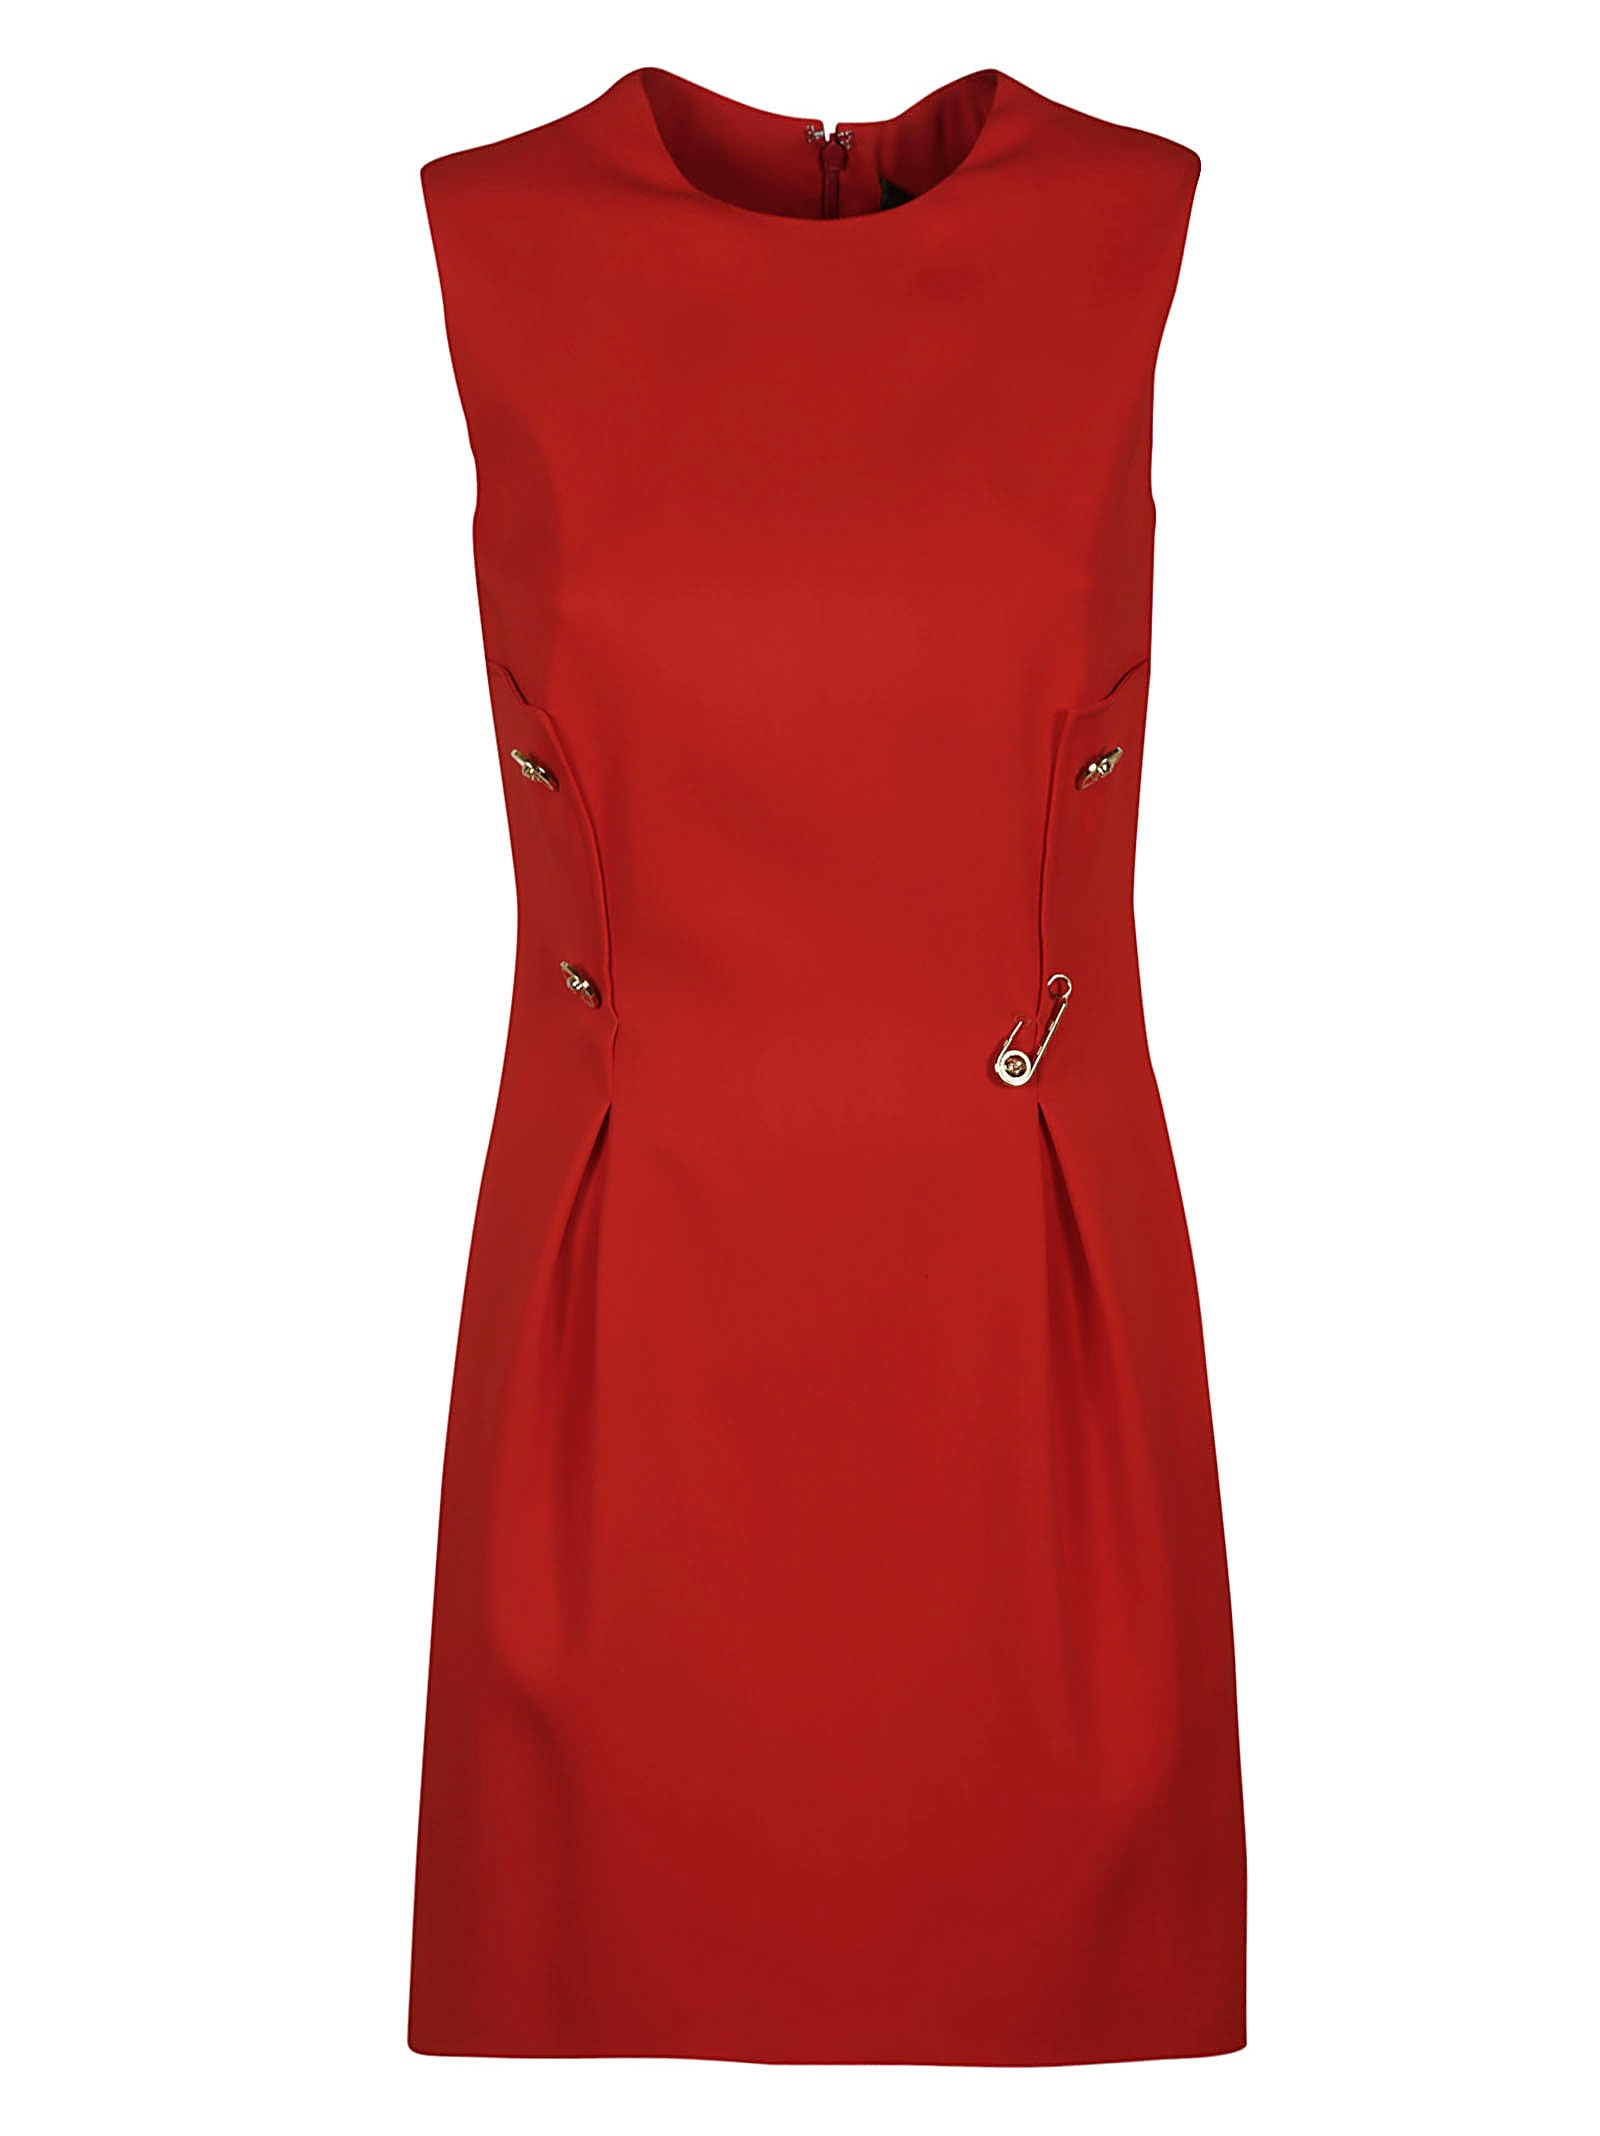 Versace Safety Pin Embellished Sleeveless Dress